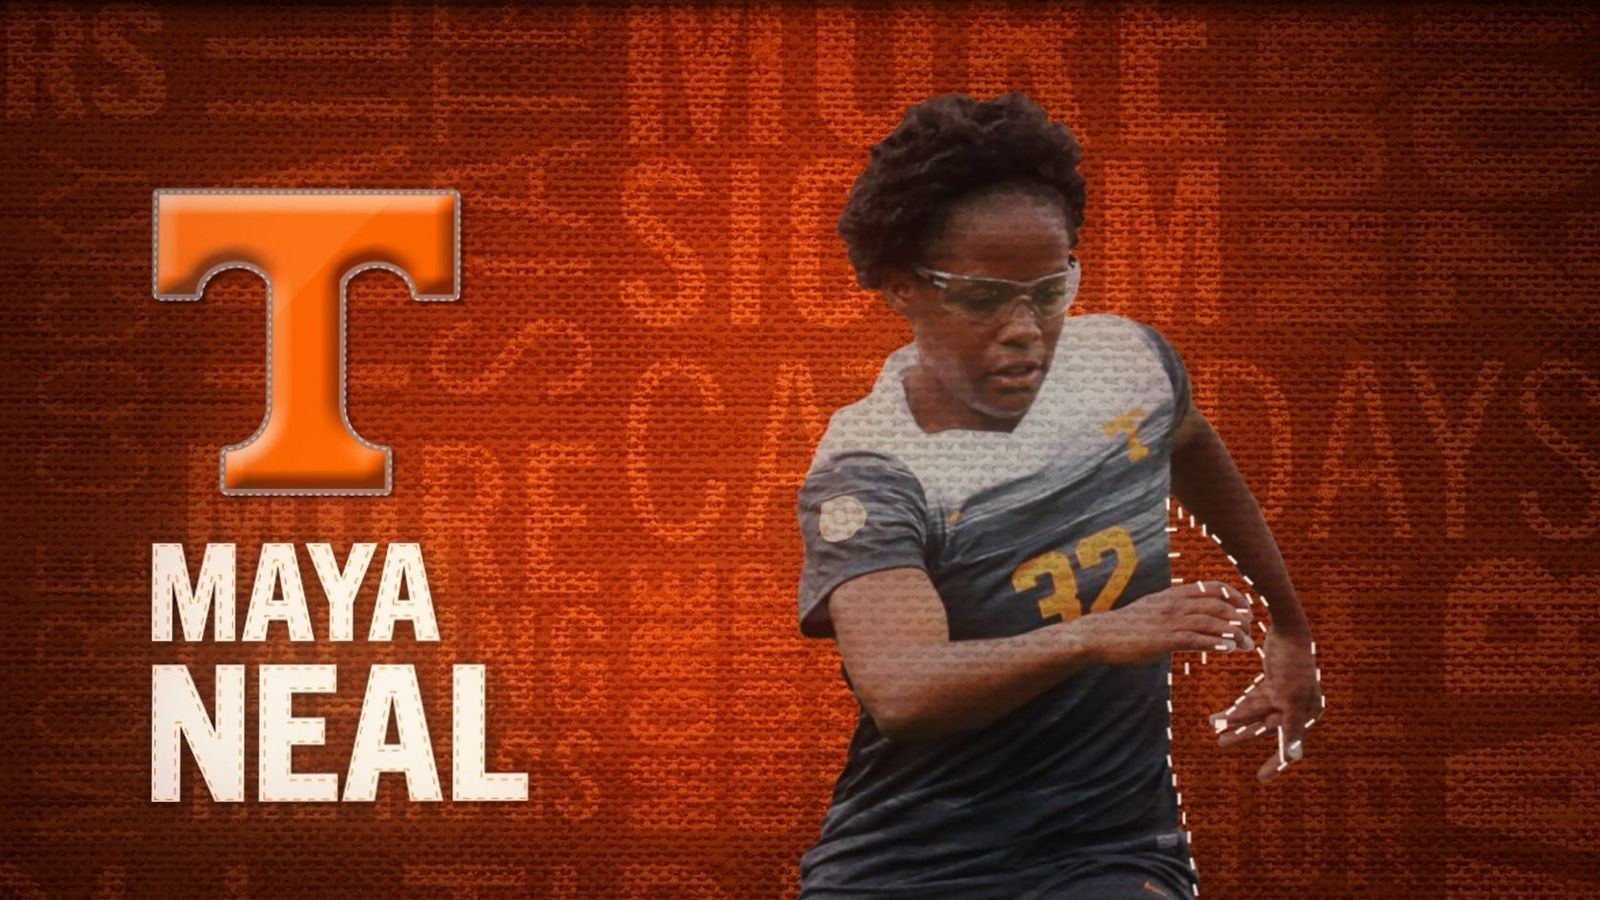 I am the SEC: Tennessee's Maya Neal